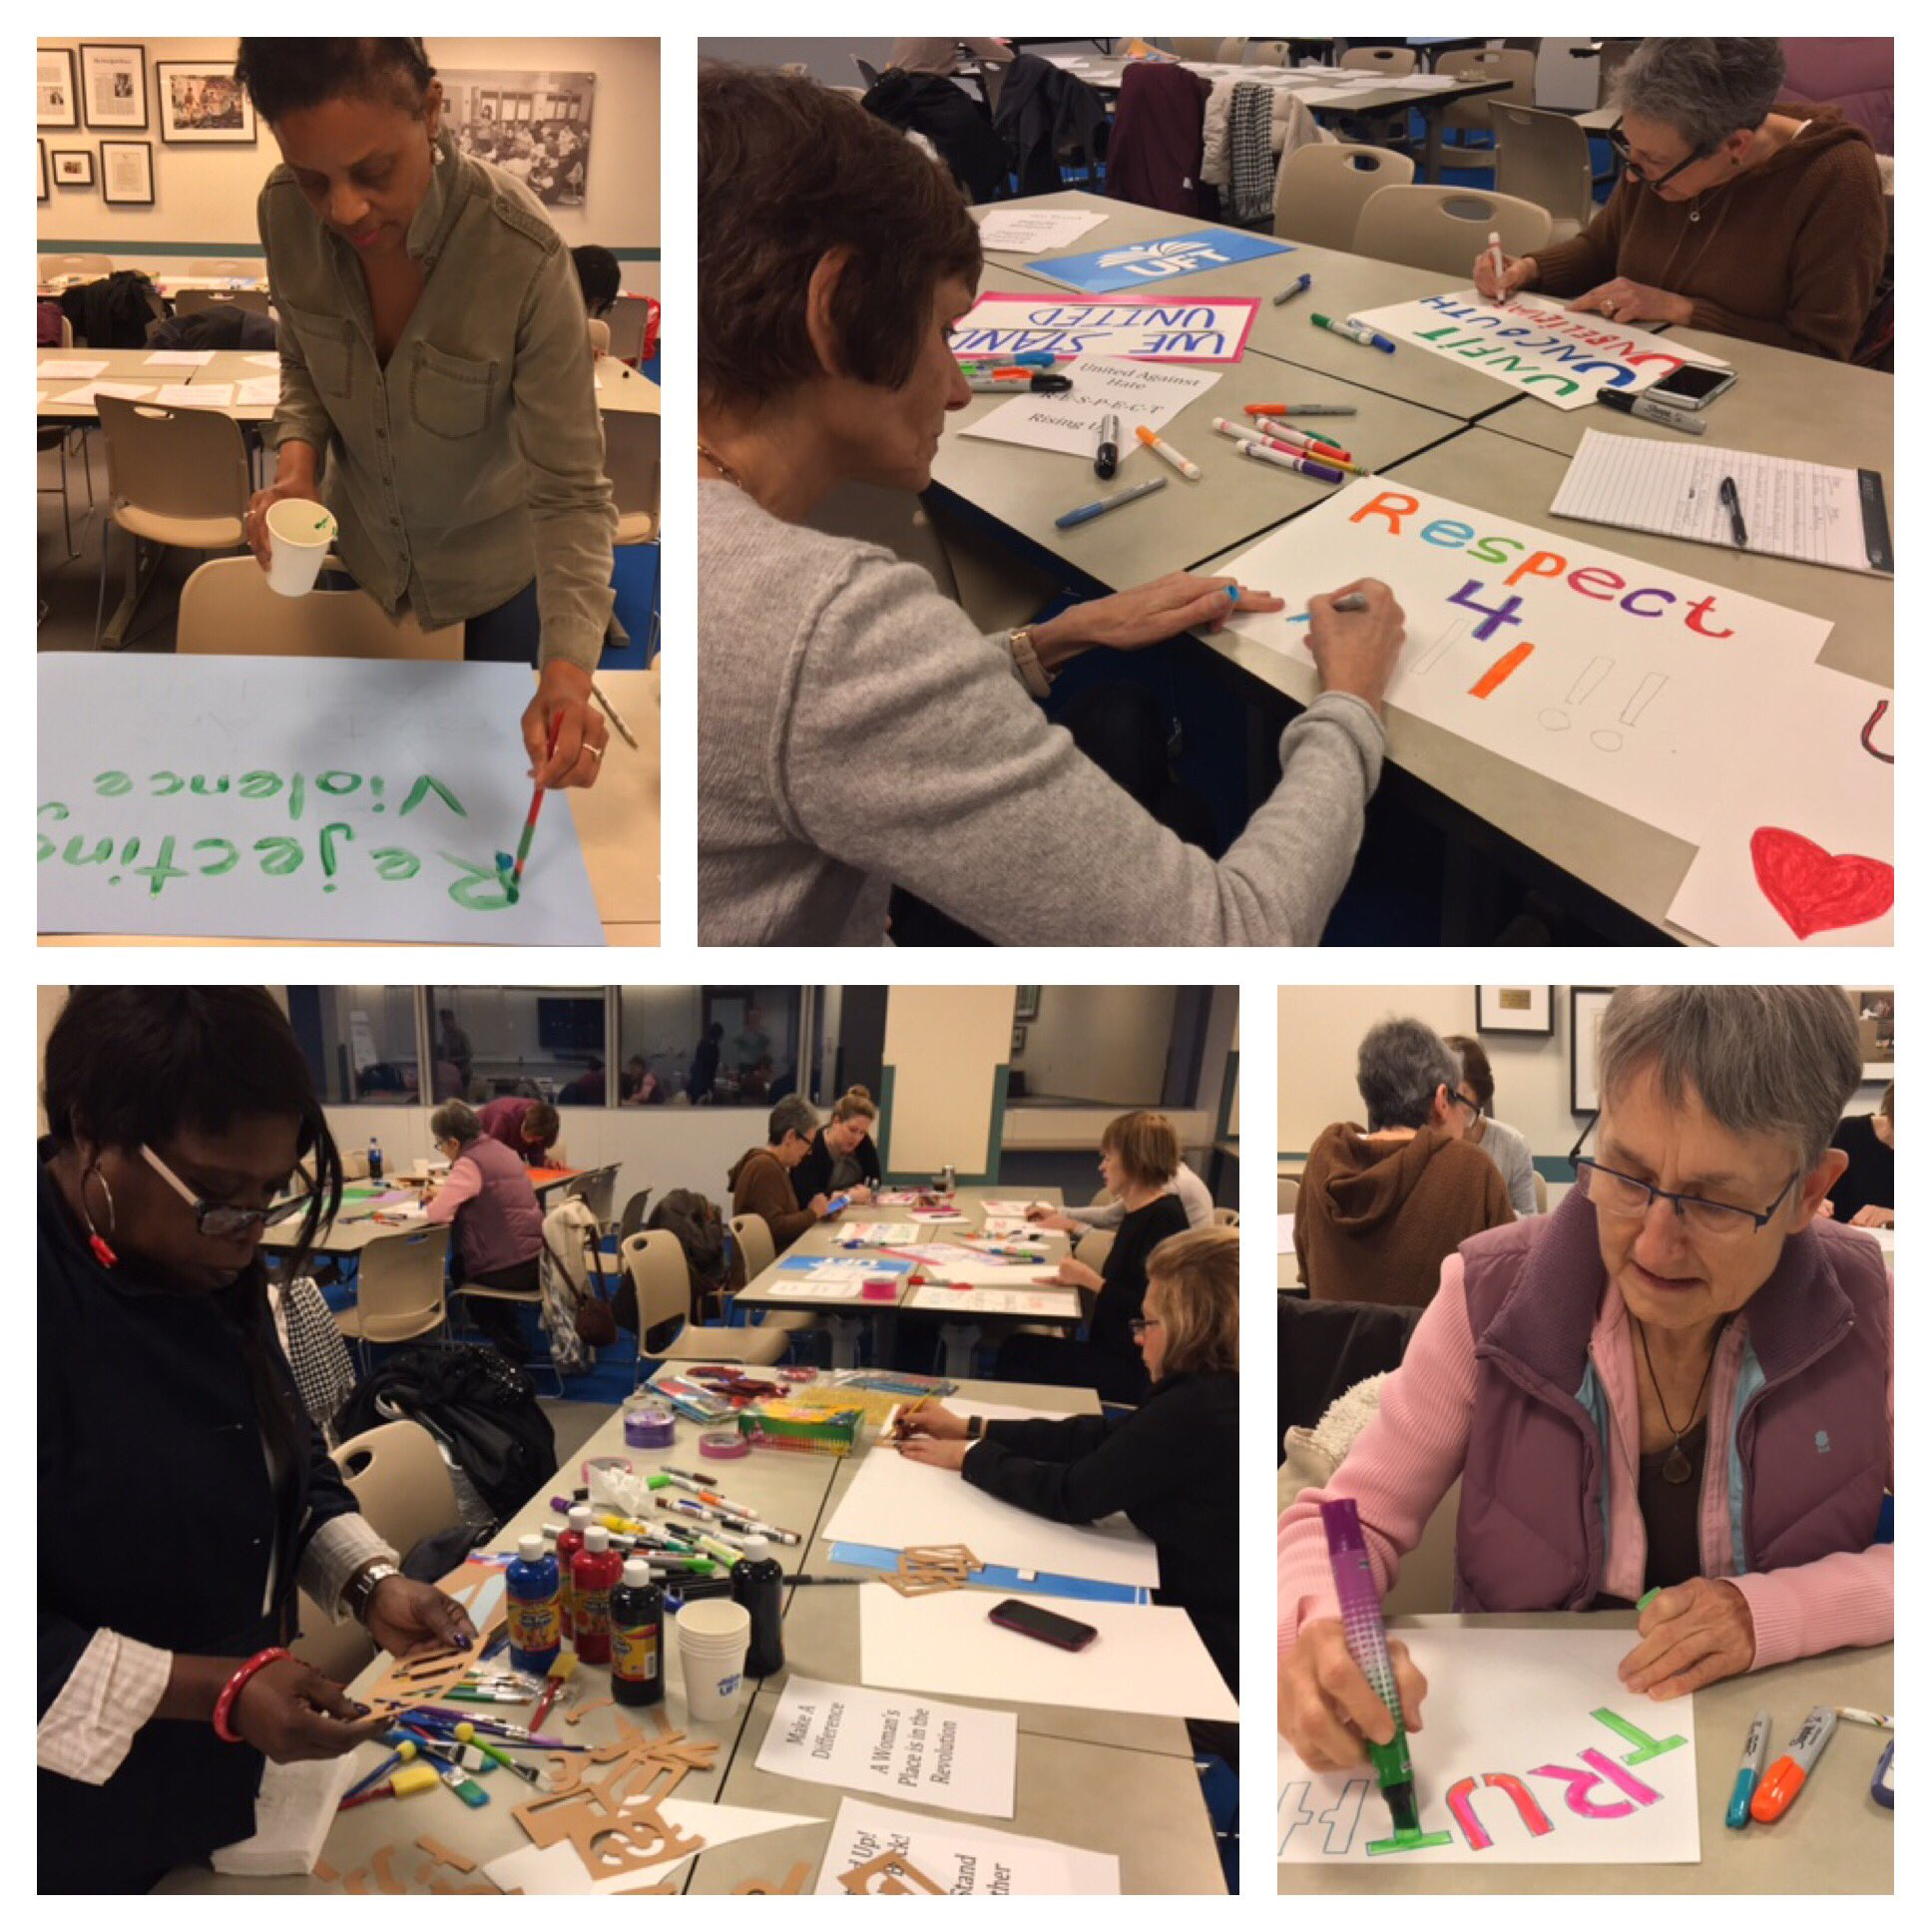 .@UFT members making signs for the @womensmarch & @WomensMarchNYC. #UnionProud #PublicSchoolProud @nysut @AFTunion https://t.co/xY8FgUClCI